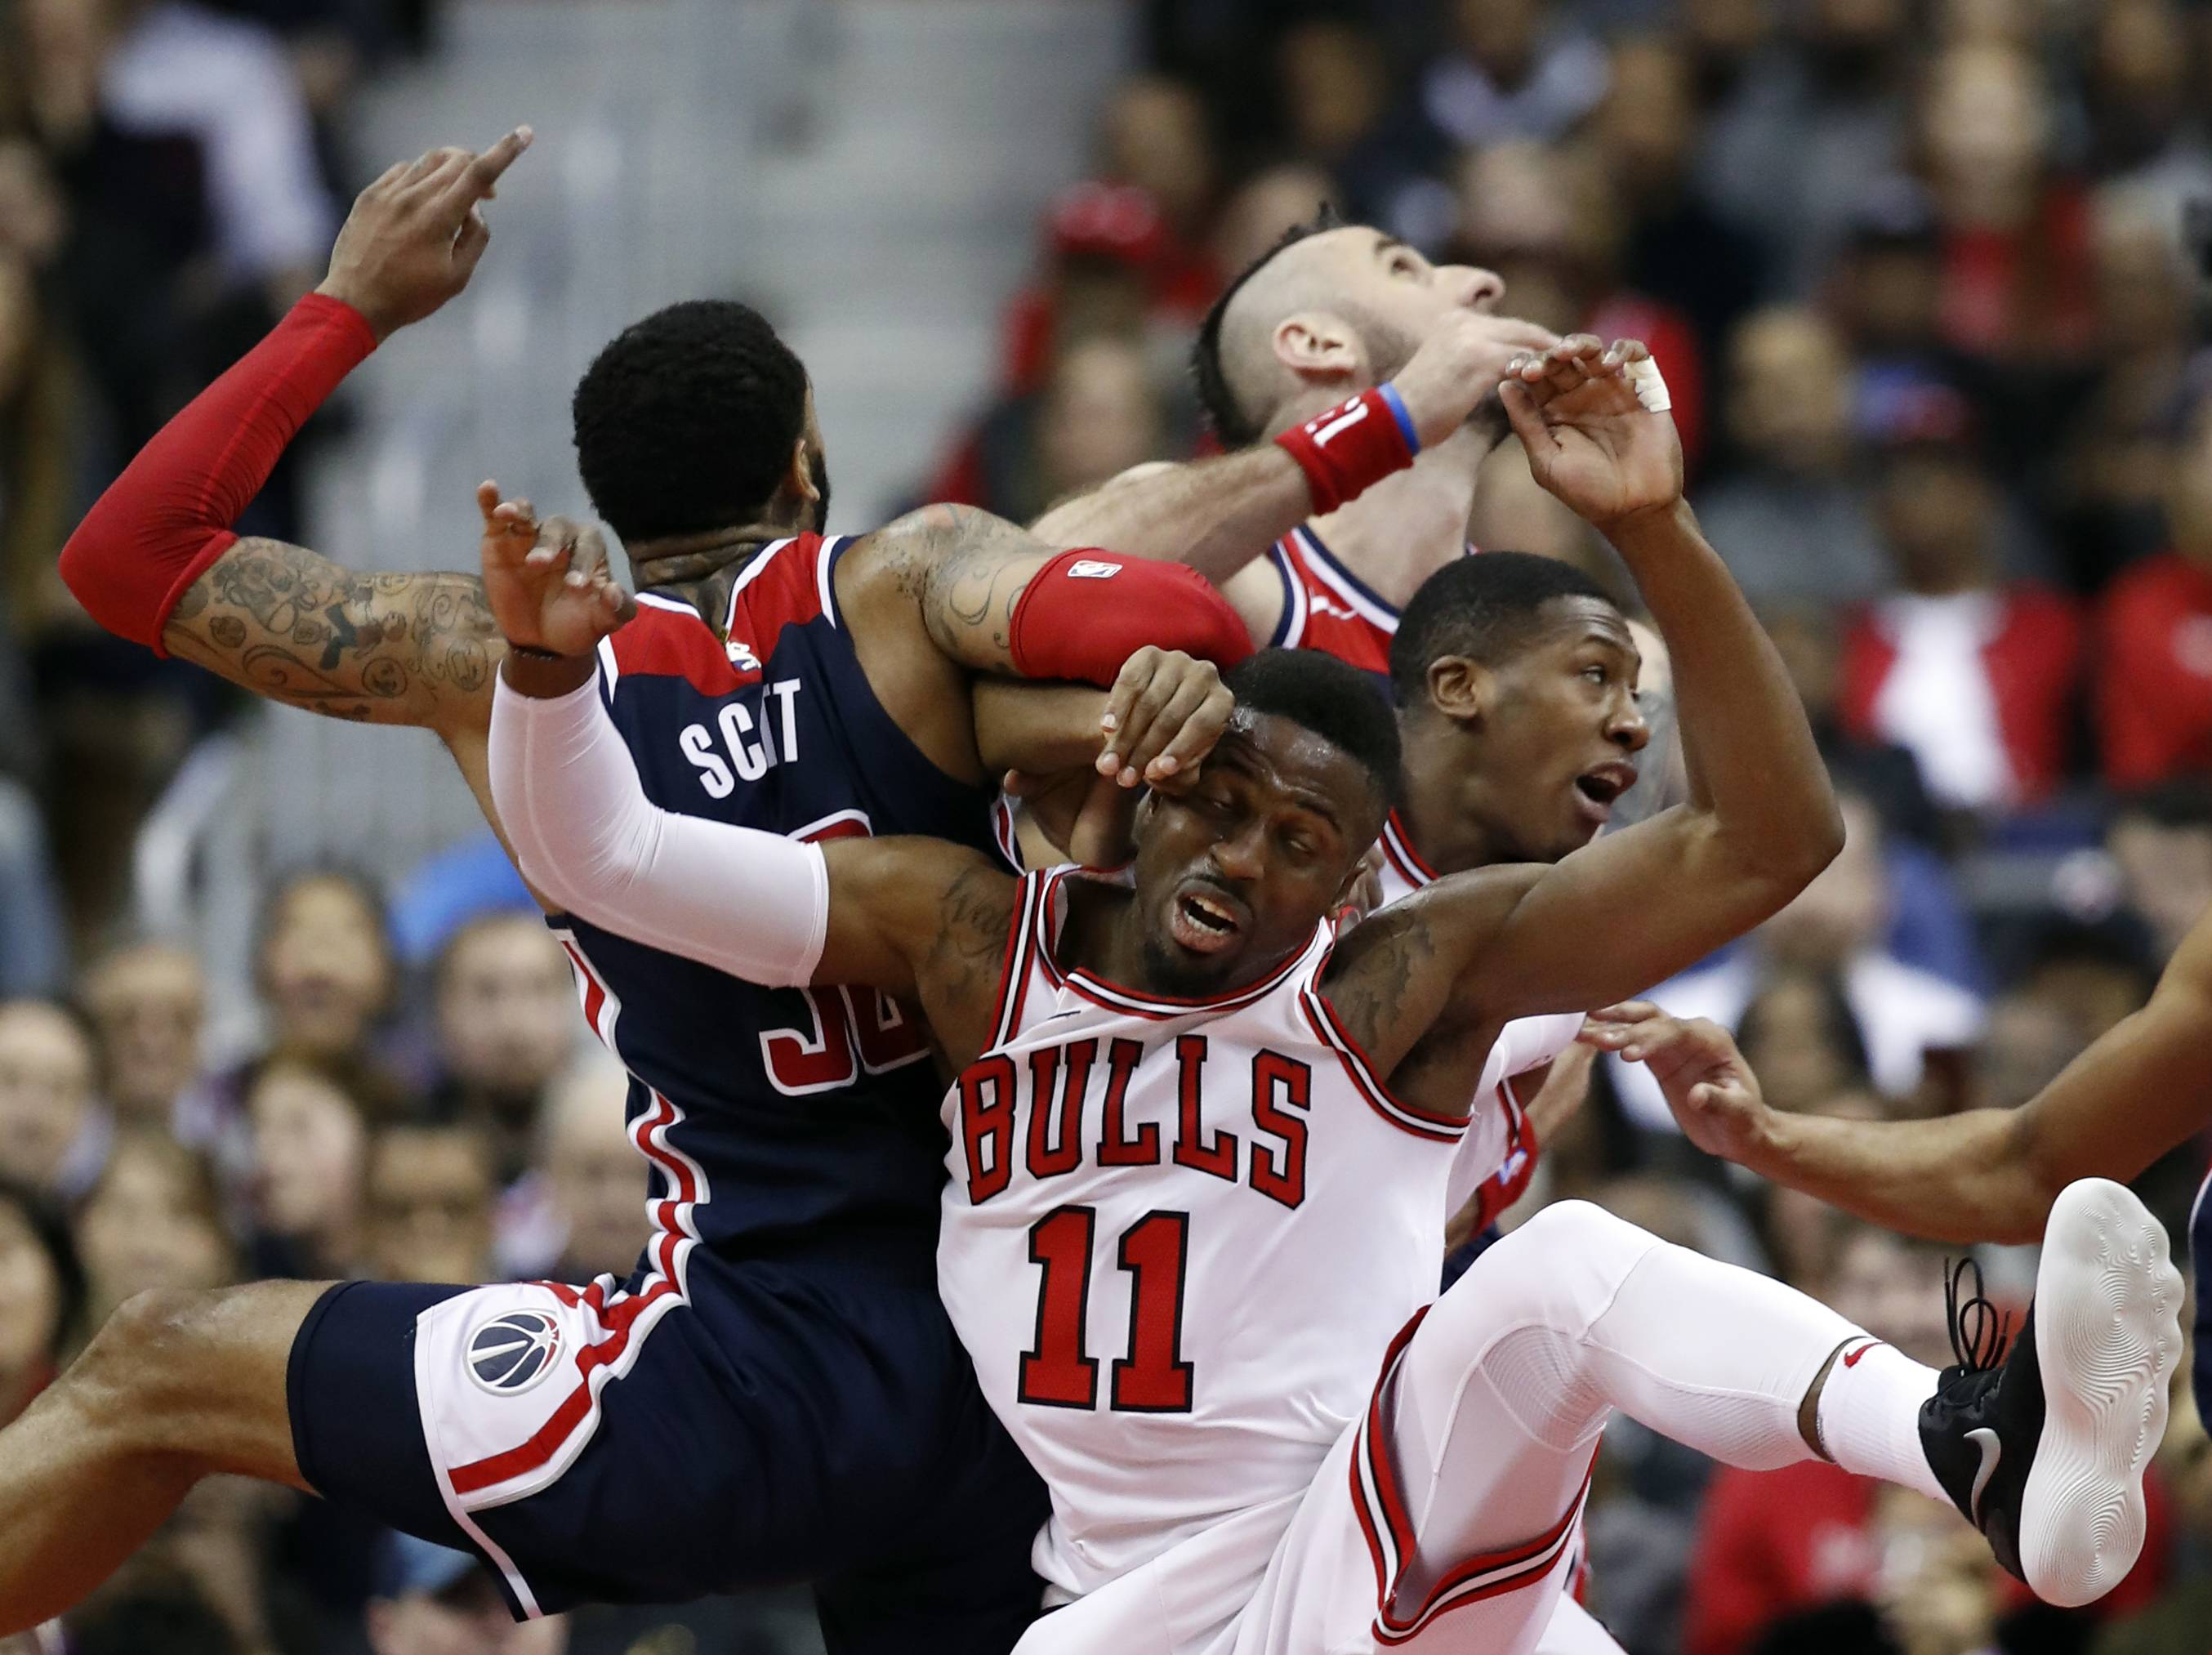 Washington Wizards forward Mike Scott, left, Chicago Bulls guard David Nwaba, Washington Wizards center Marcin Gortat, from Poland, and Chicago Bulls guard Kris Dunn get tangled up as they go for a rebound during the second half of an NBA basketball game, Sunday, Dec. 31, 2017, in Washington. The Wizards won 114-110.